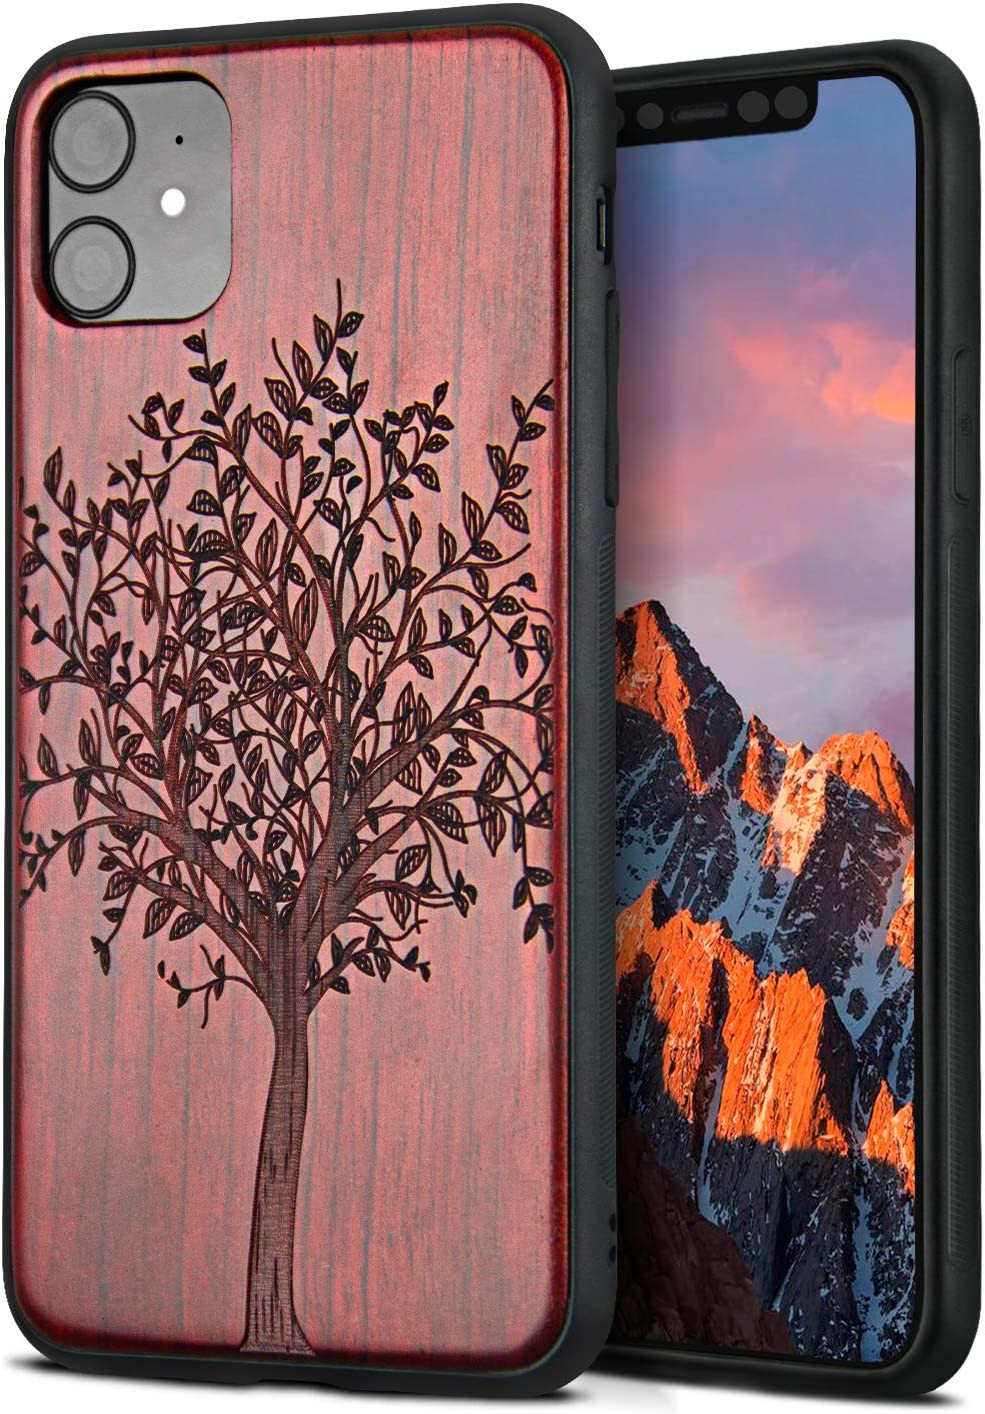 YFWOOD Compatible for iPhone 11 Case 6.1 inch, Unique Wood Shockproof Drop Proof Bumper Protection Cover for iPhone 11